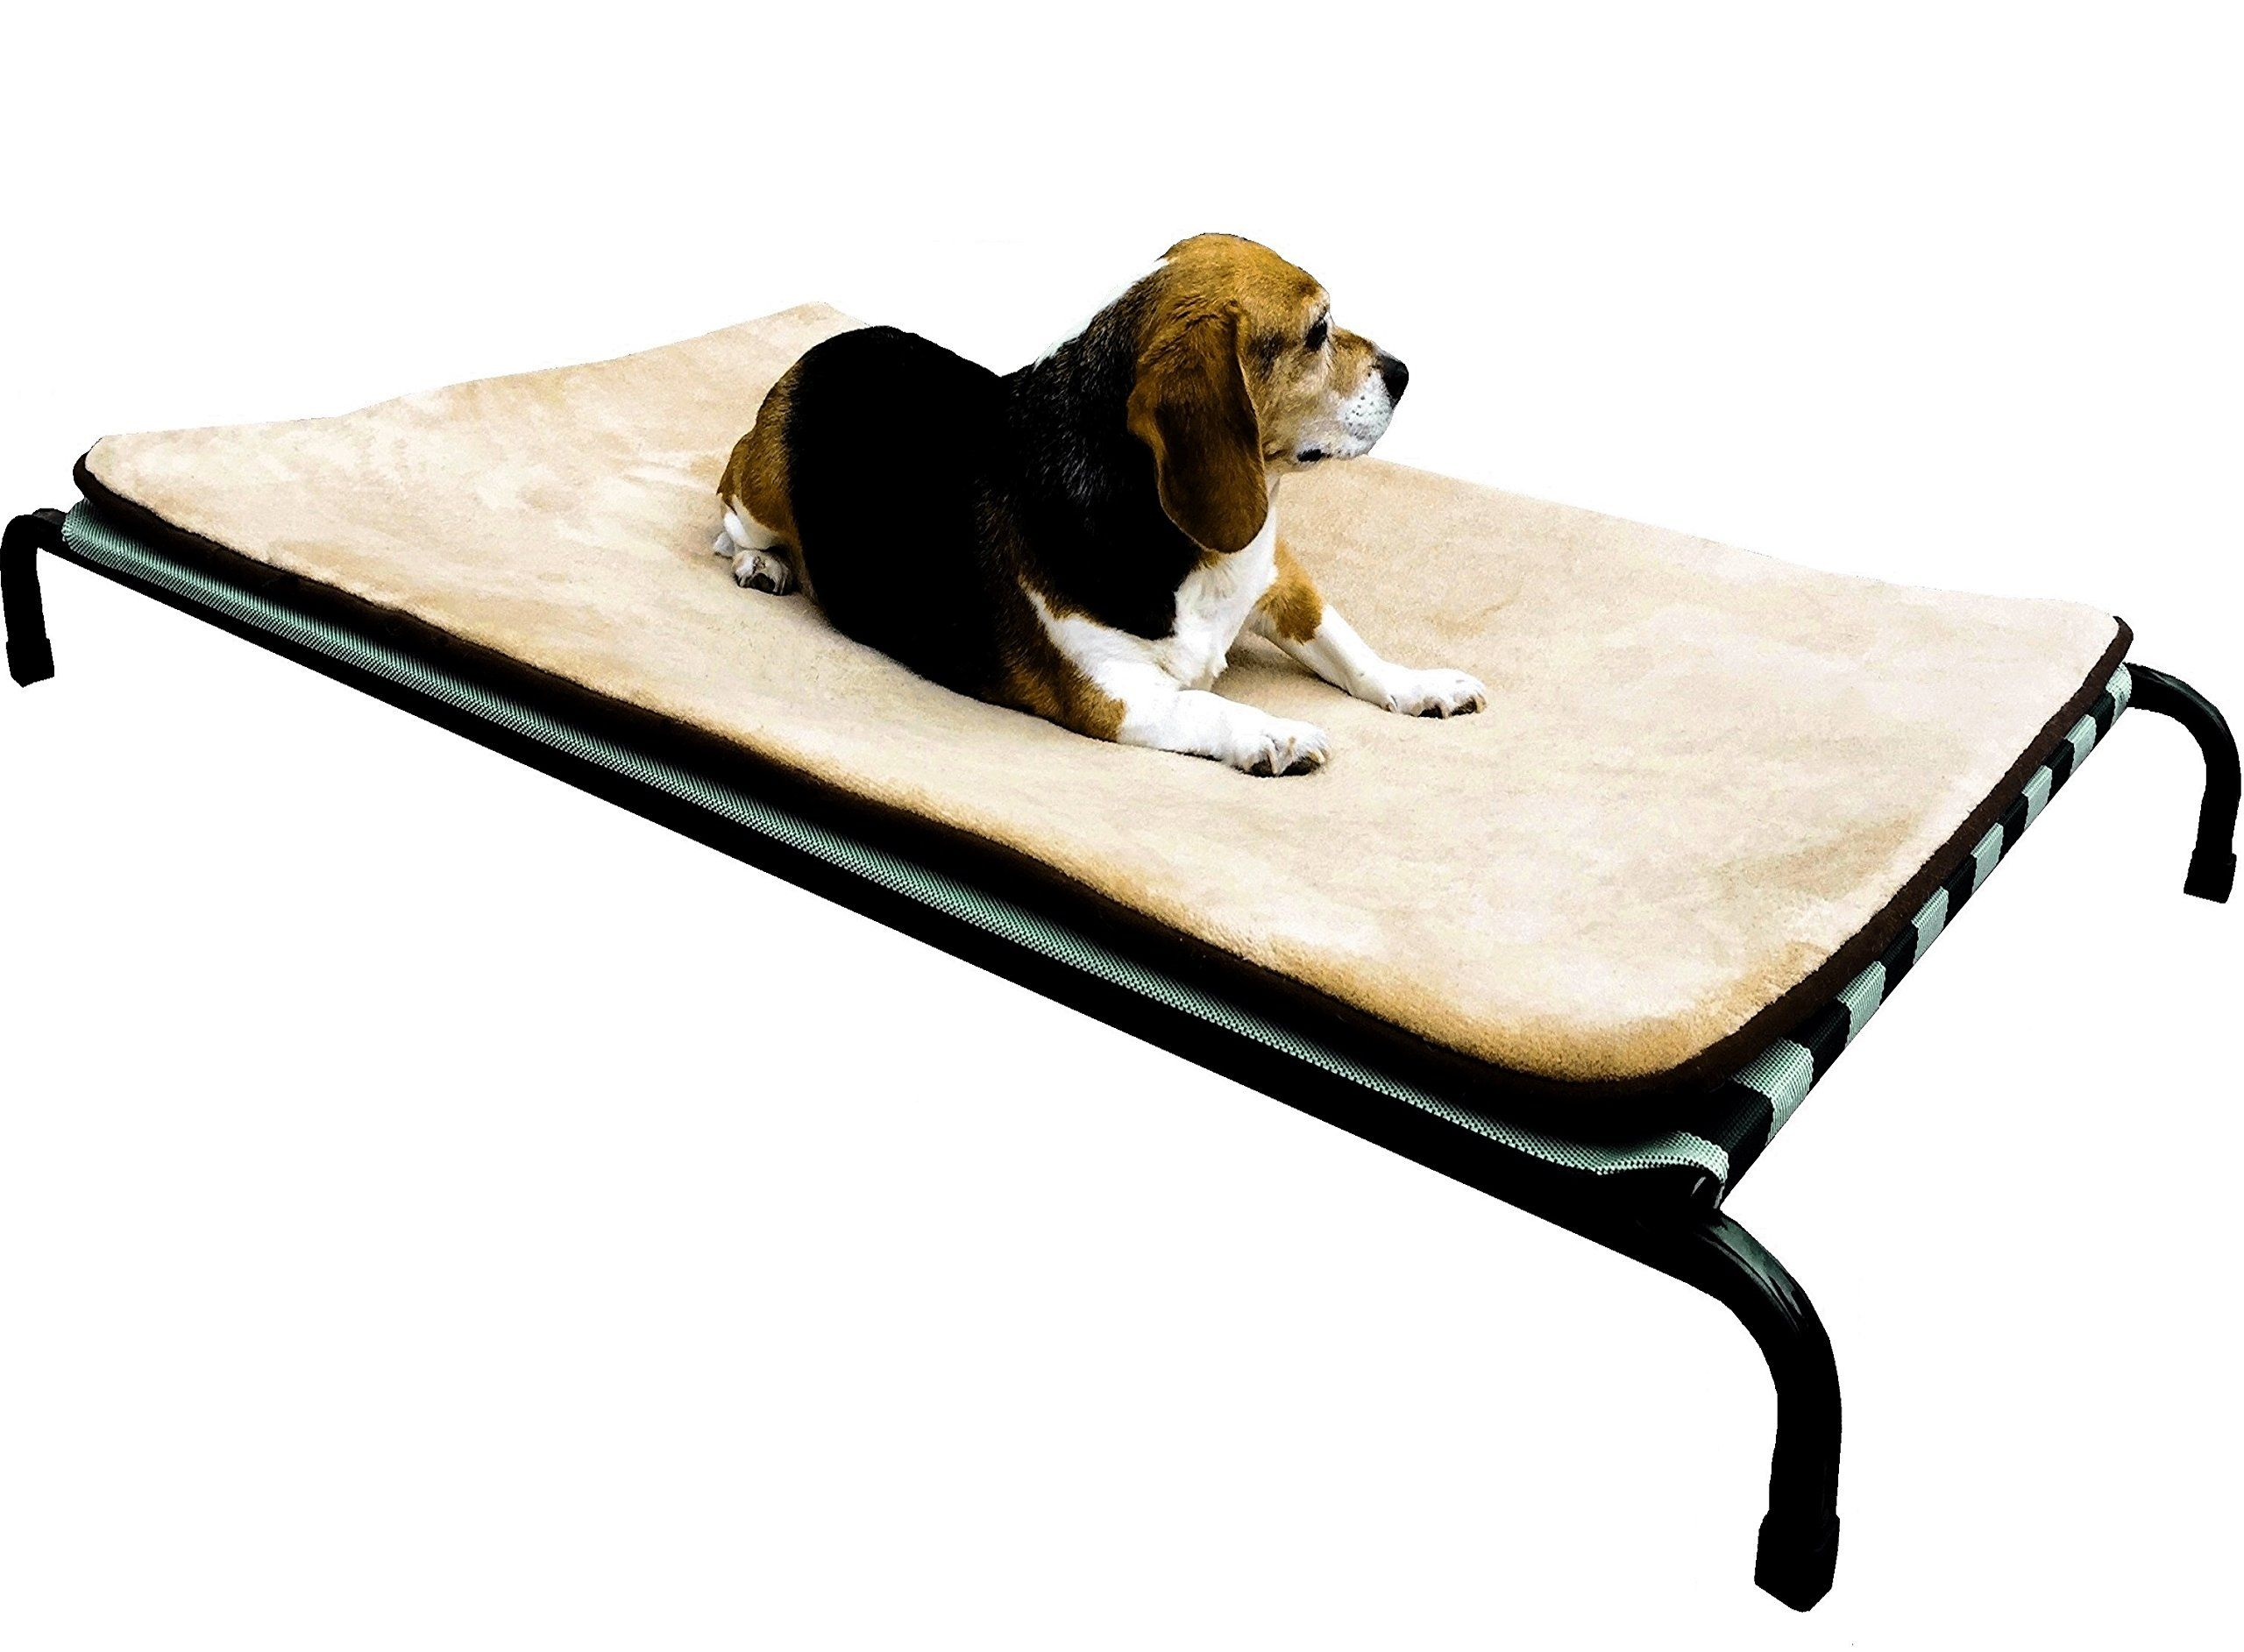 dogbed4less Textilene Fabric Heavy Duty Steel Elevated Pet